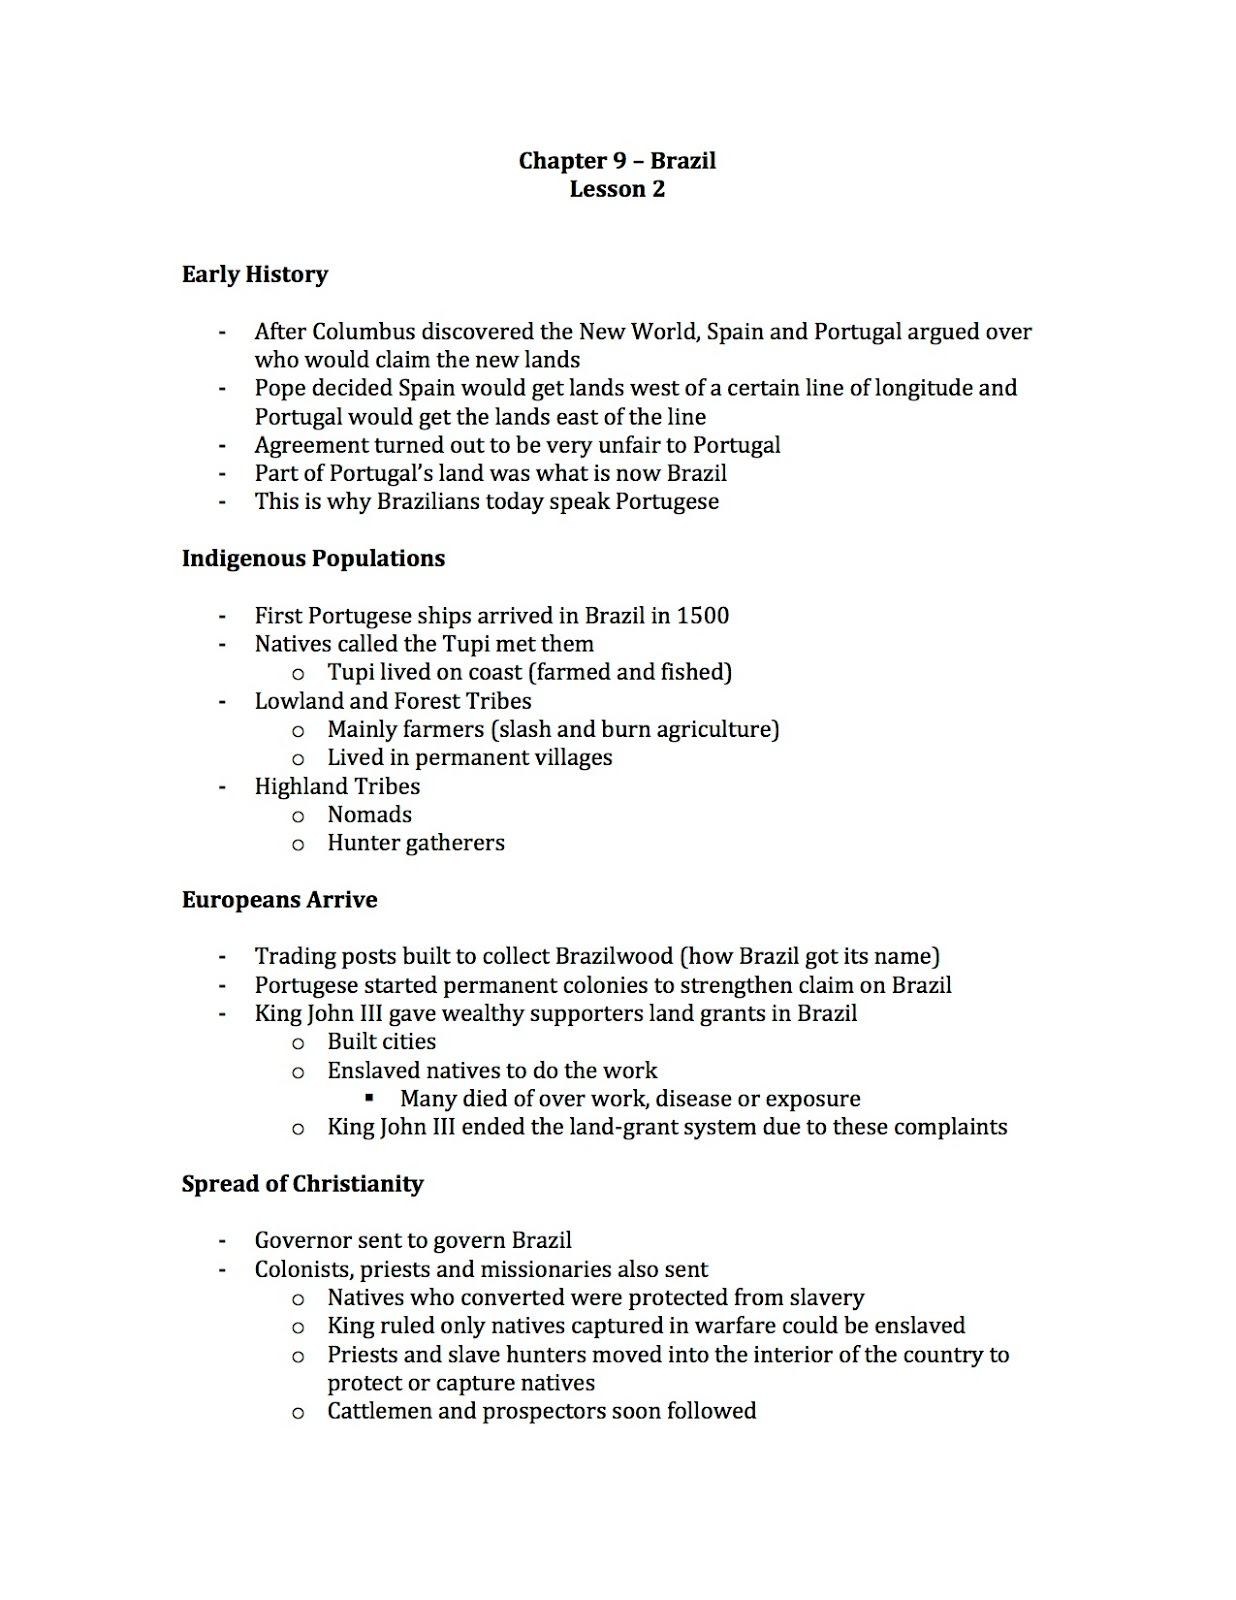 worksheet Vocabulary Builder Worksheets ehms world cultures geography vocabulary builder worksheet due homework alert the chapter 9 is at beginning of class tomorrow 1918